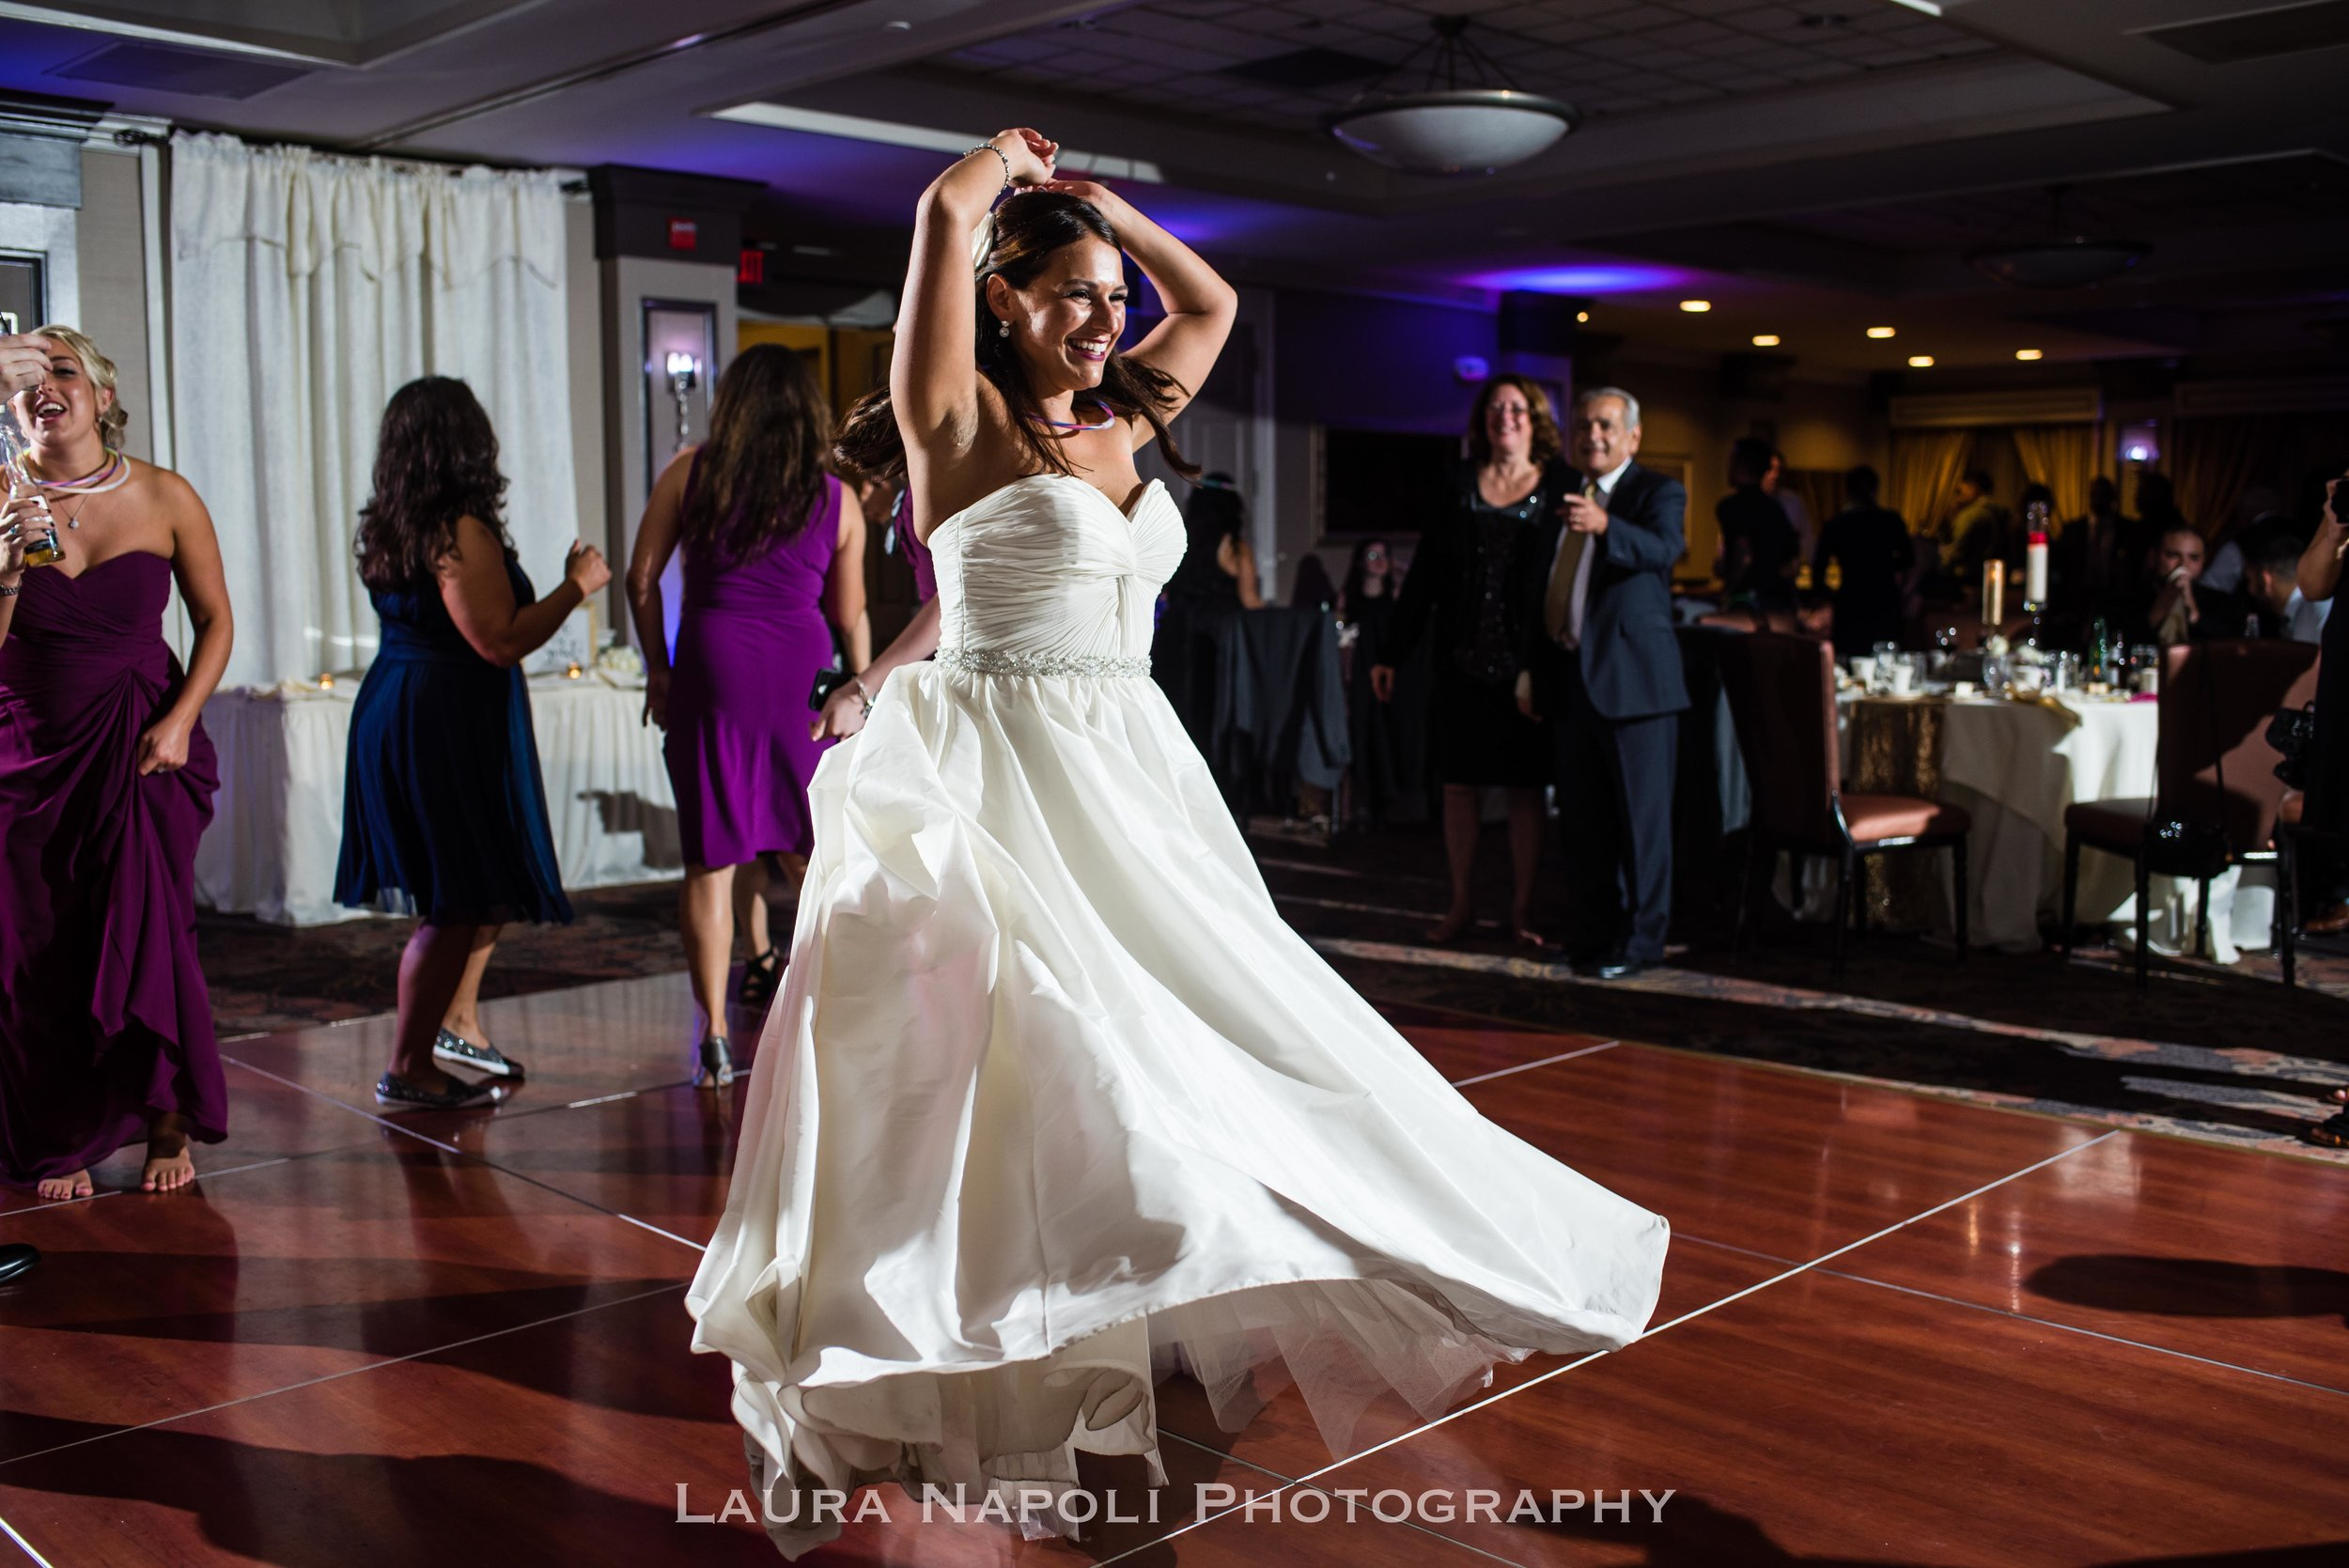 ScotlandRunWilliamstownNJWeddingvenue-16.jpg